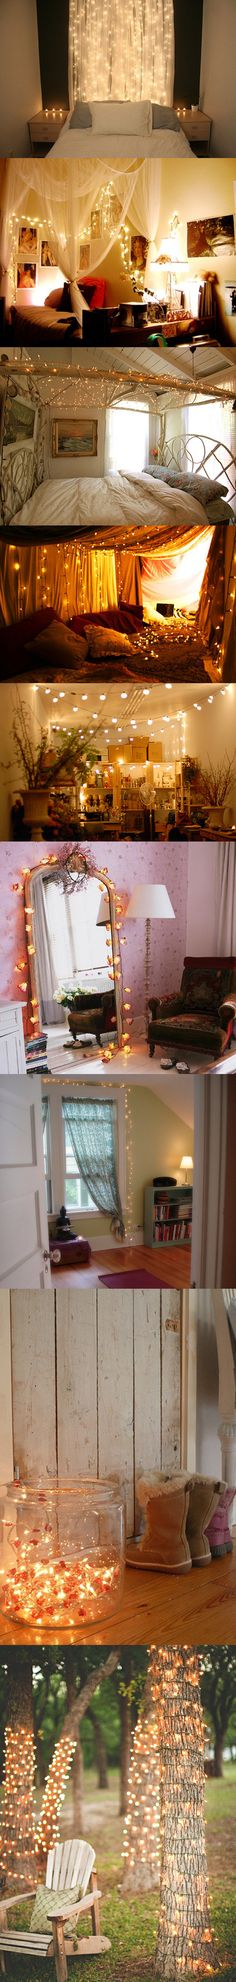 So many uses for Christmas lights that i want to do when i get my own place